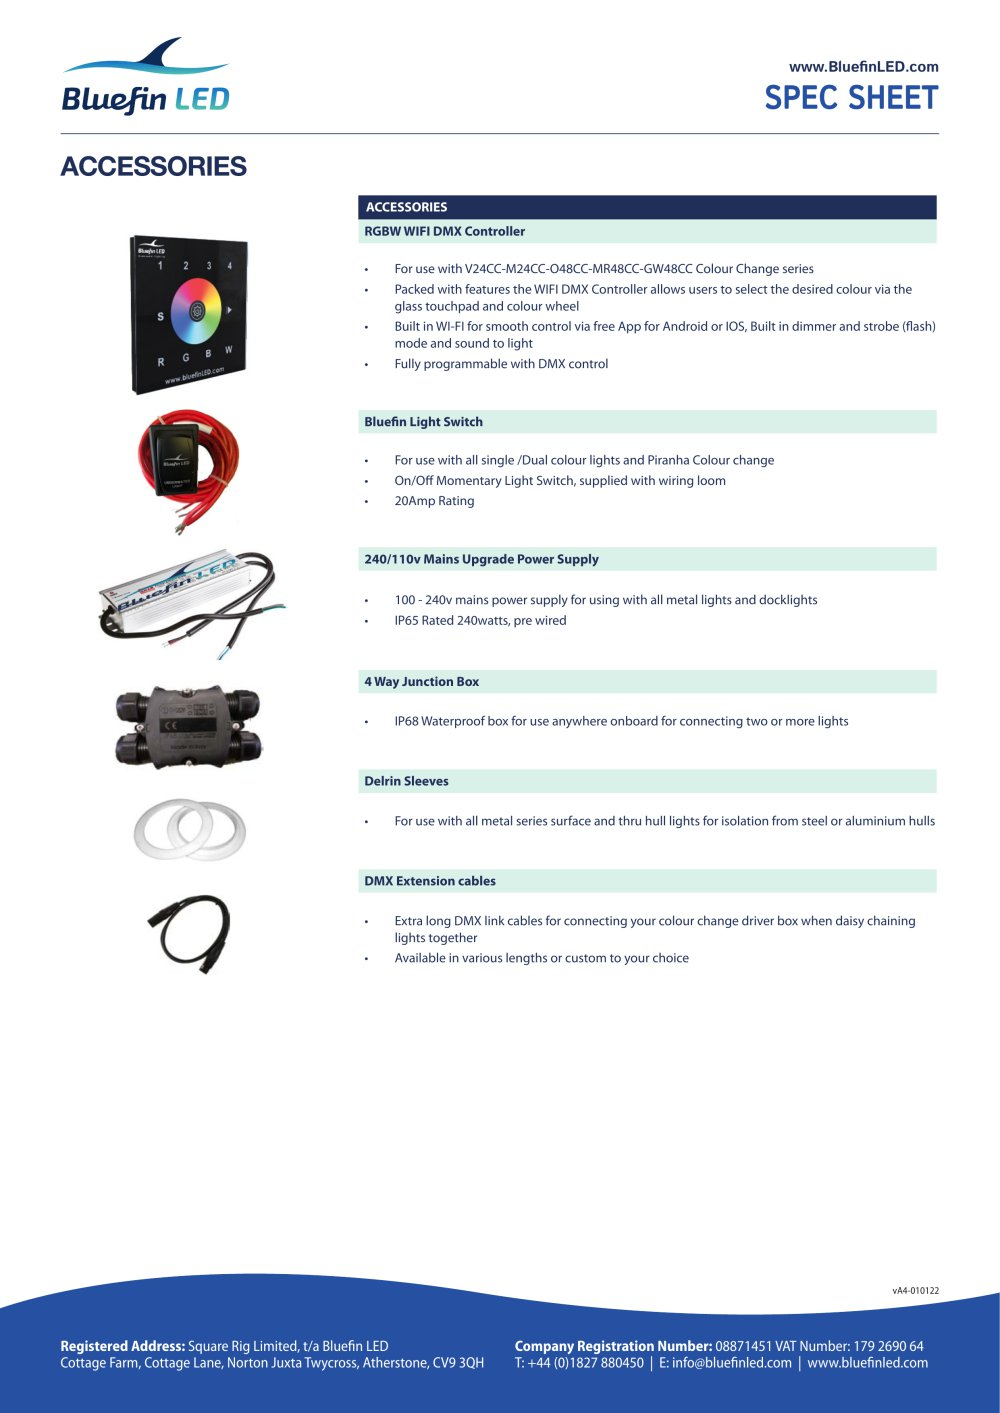 Wifi Dmx Controller Bluefin Led Pdf Catalogues Documentation Wiring Diagram 1 4 Pages